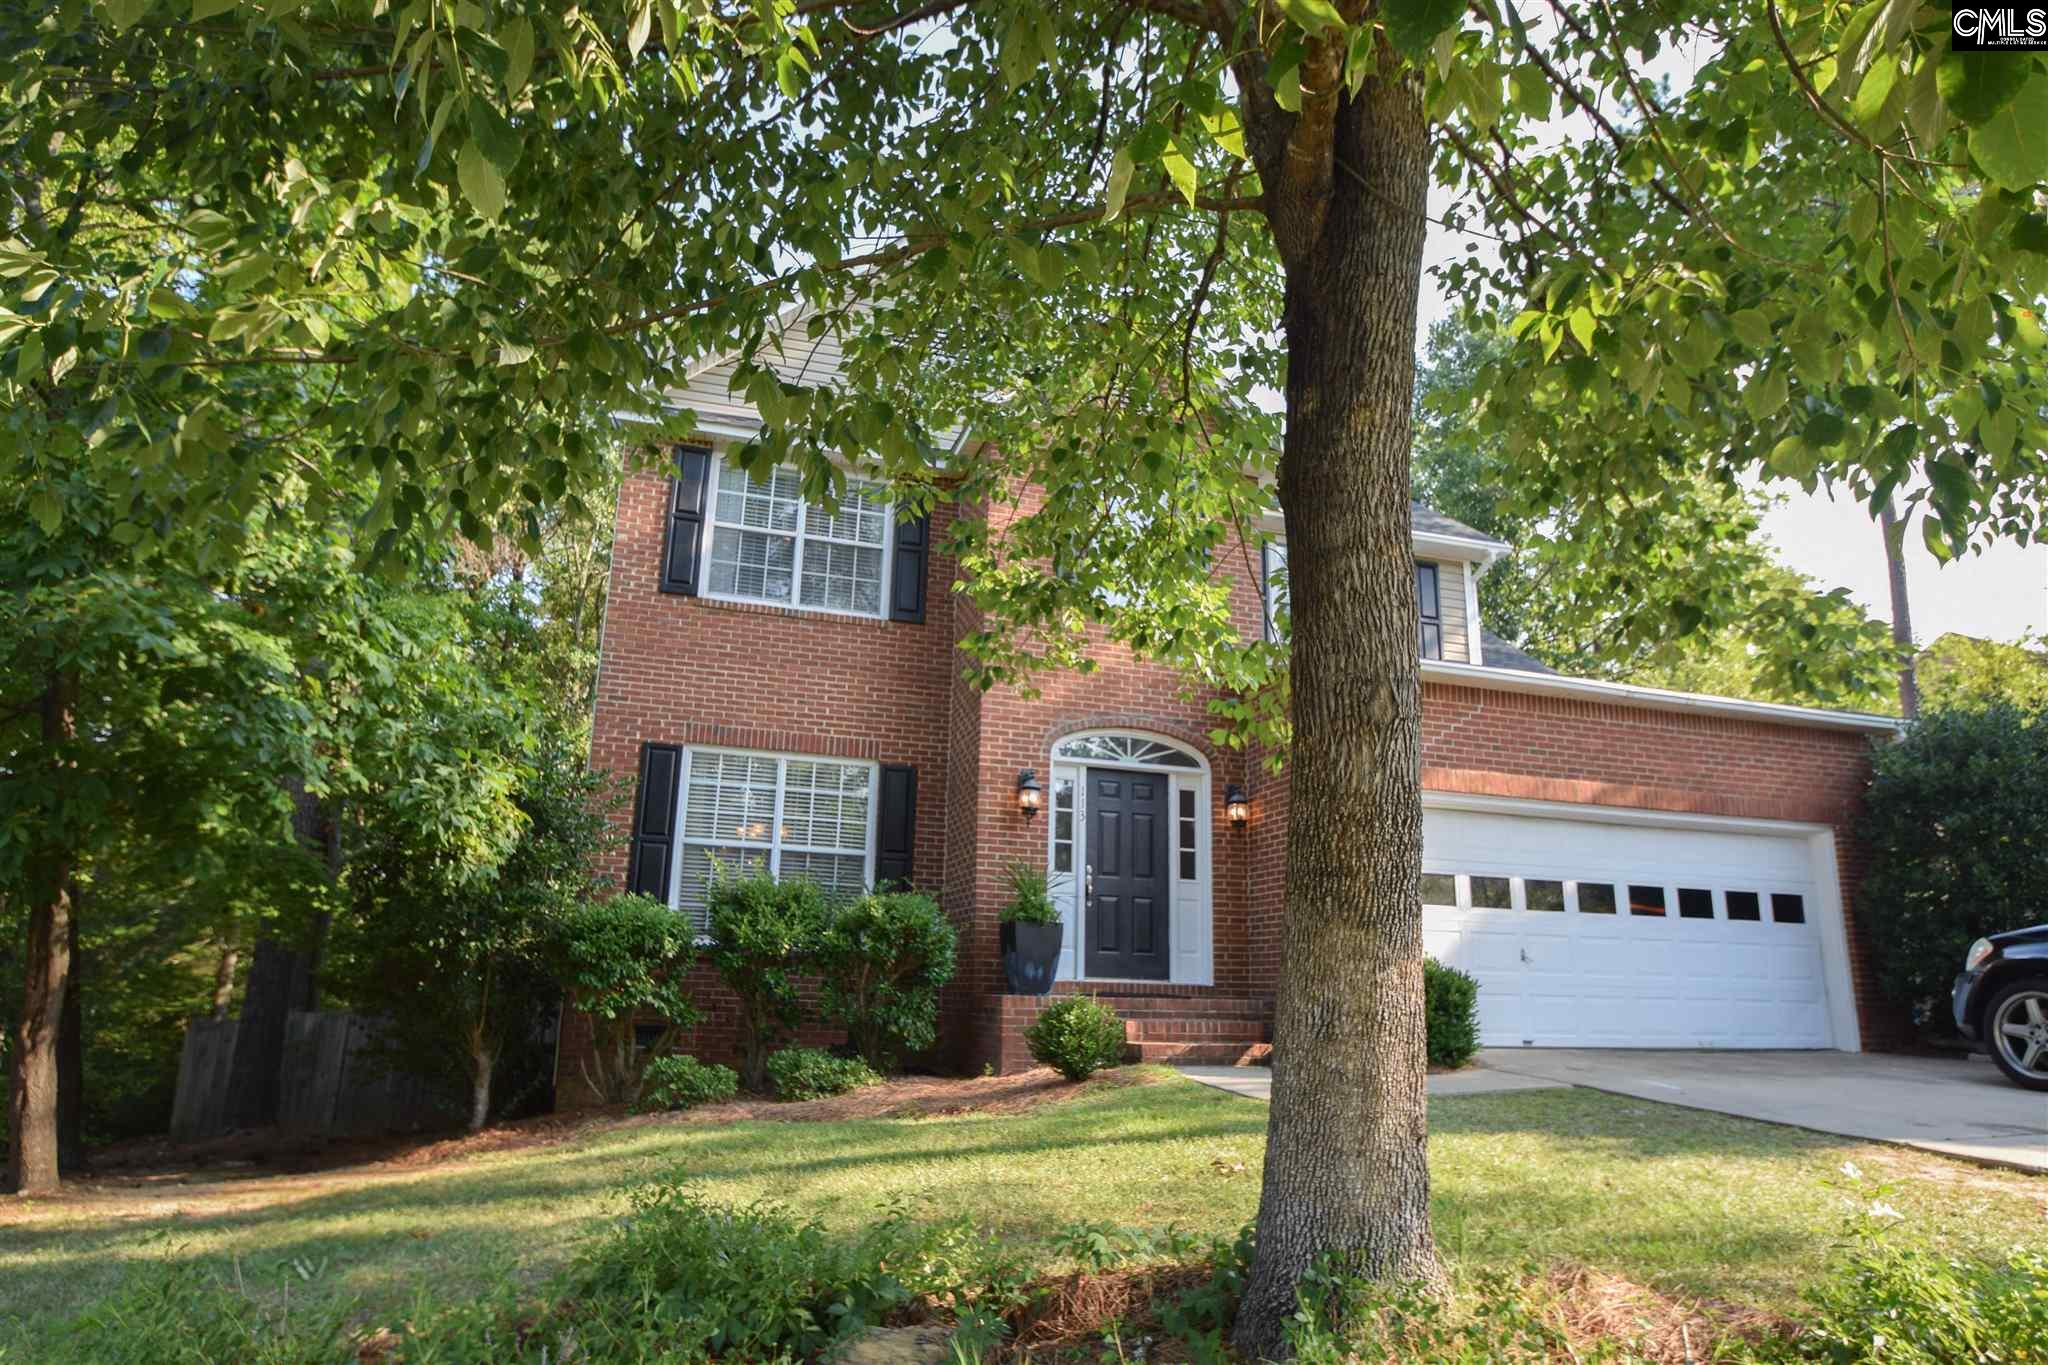 113 Hollenbeck Rd, Irmo, SC 29063 - MLS 476996 - Coldwell Banker